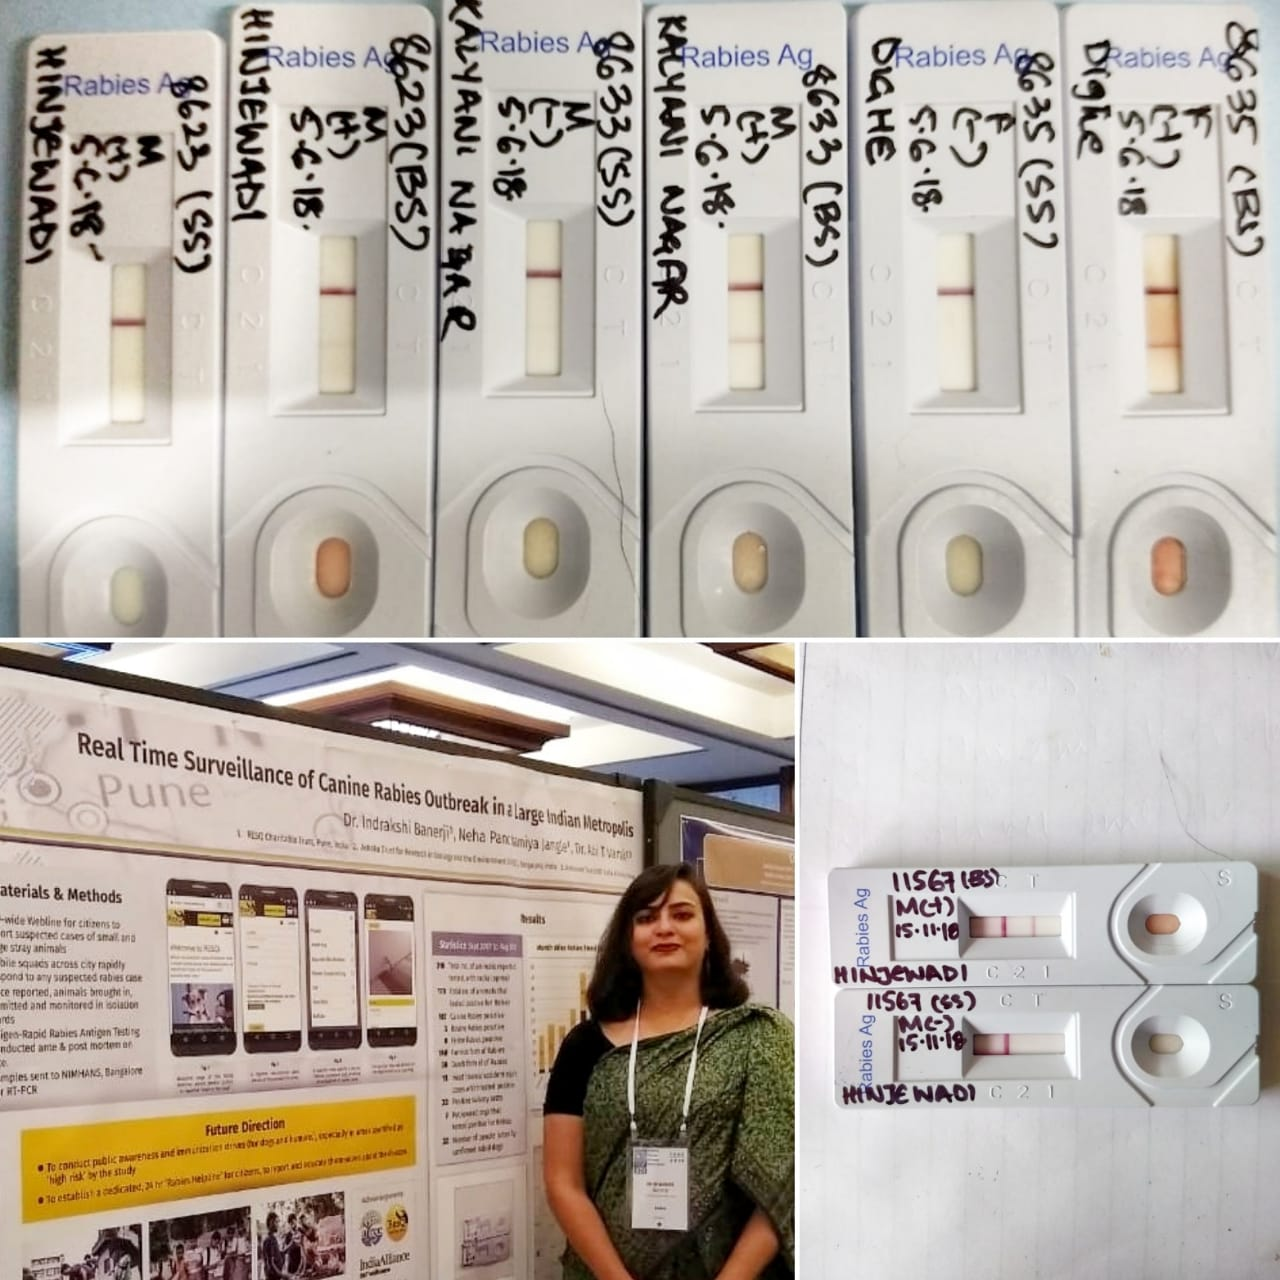 Rabies Testing Kits | Dr. Indrakshi Banerji presenting our work at the CDC in Atlanta (2018)